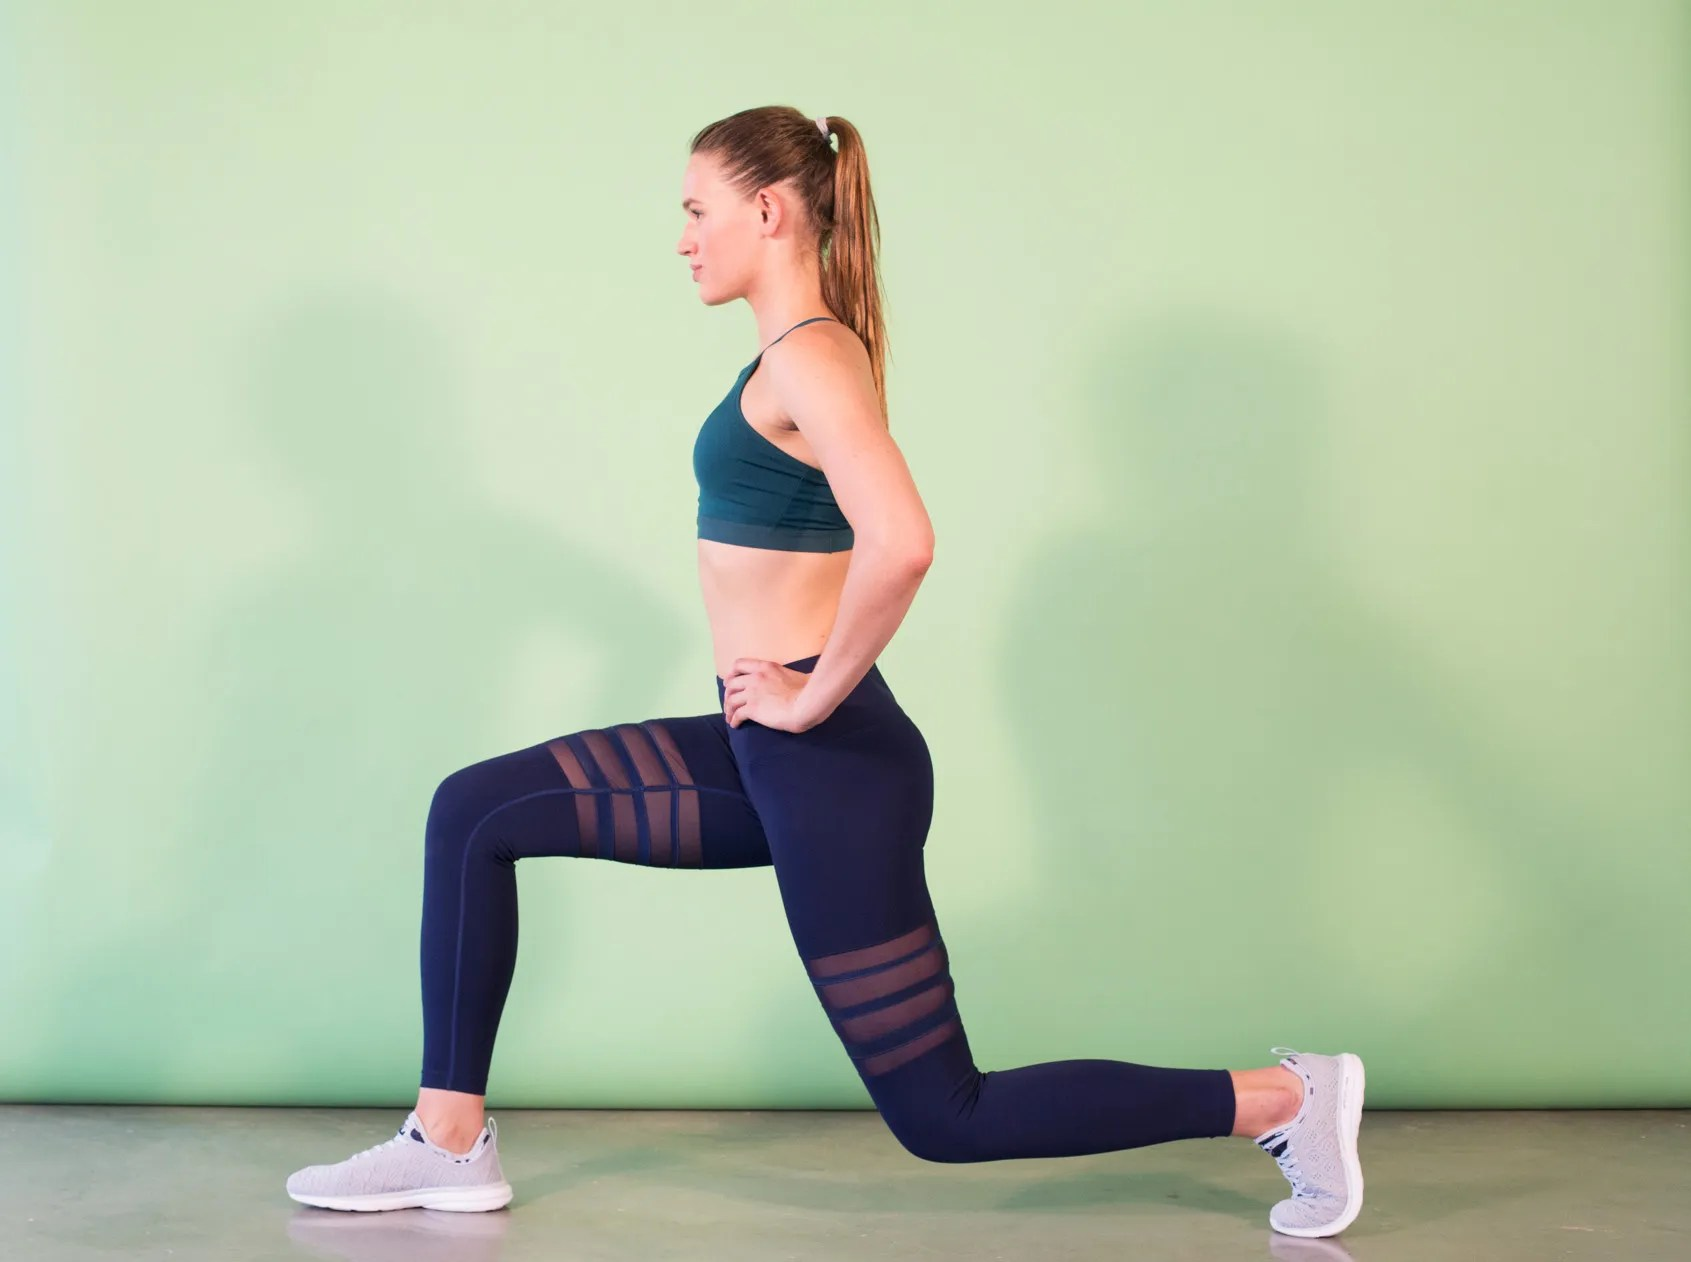 13 At Home Leg Exercises For Women That Require No Equipment Self